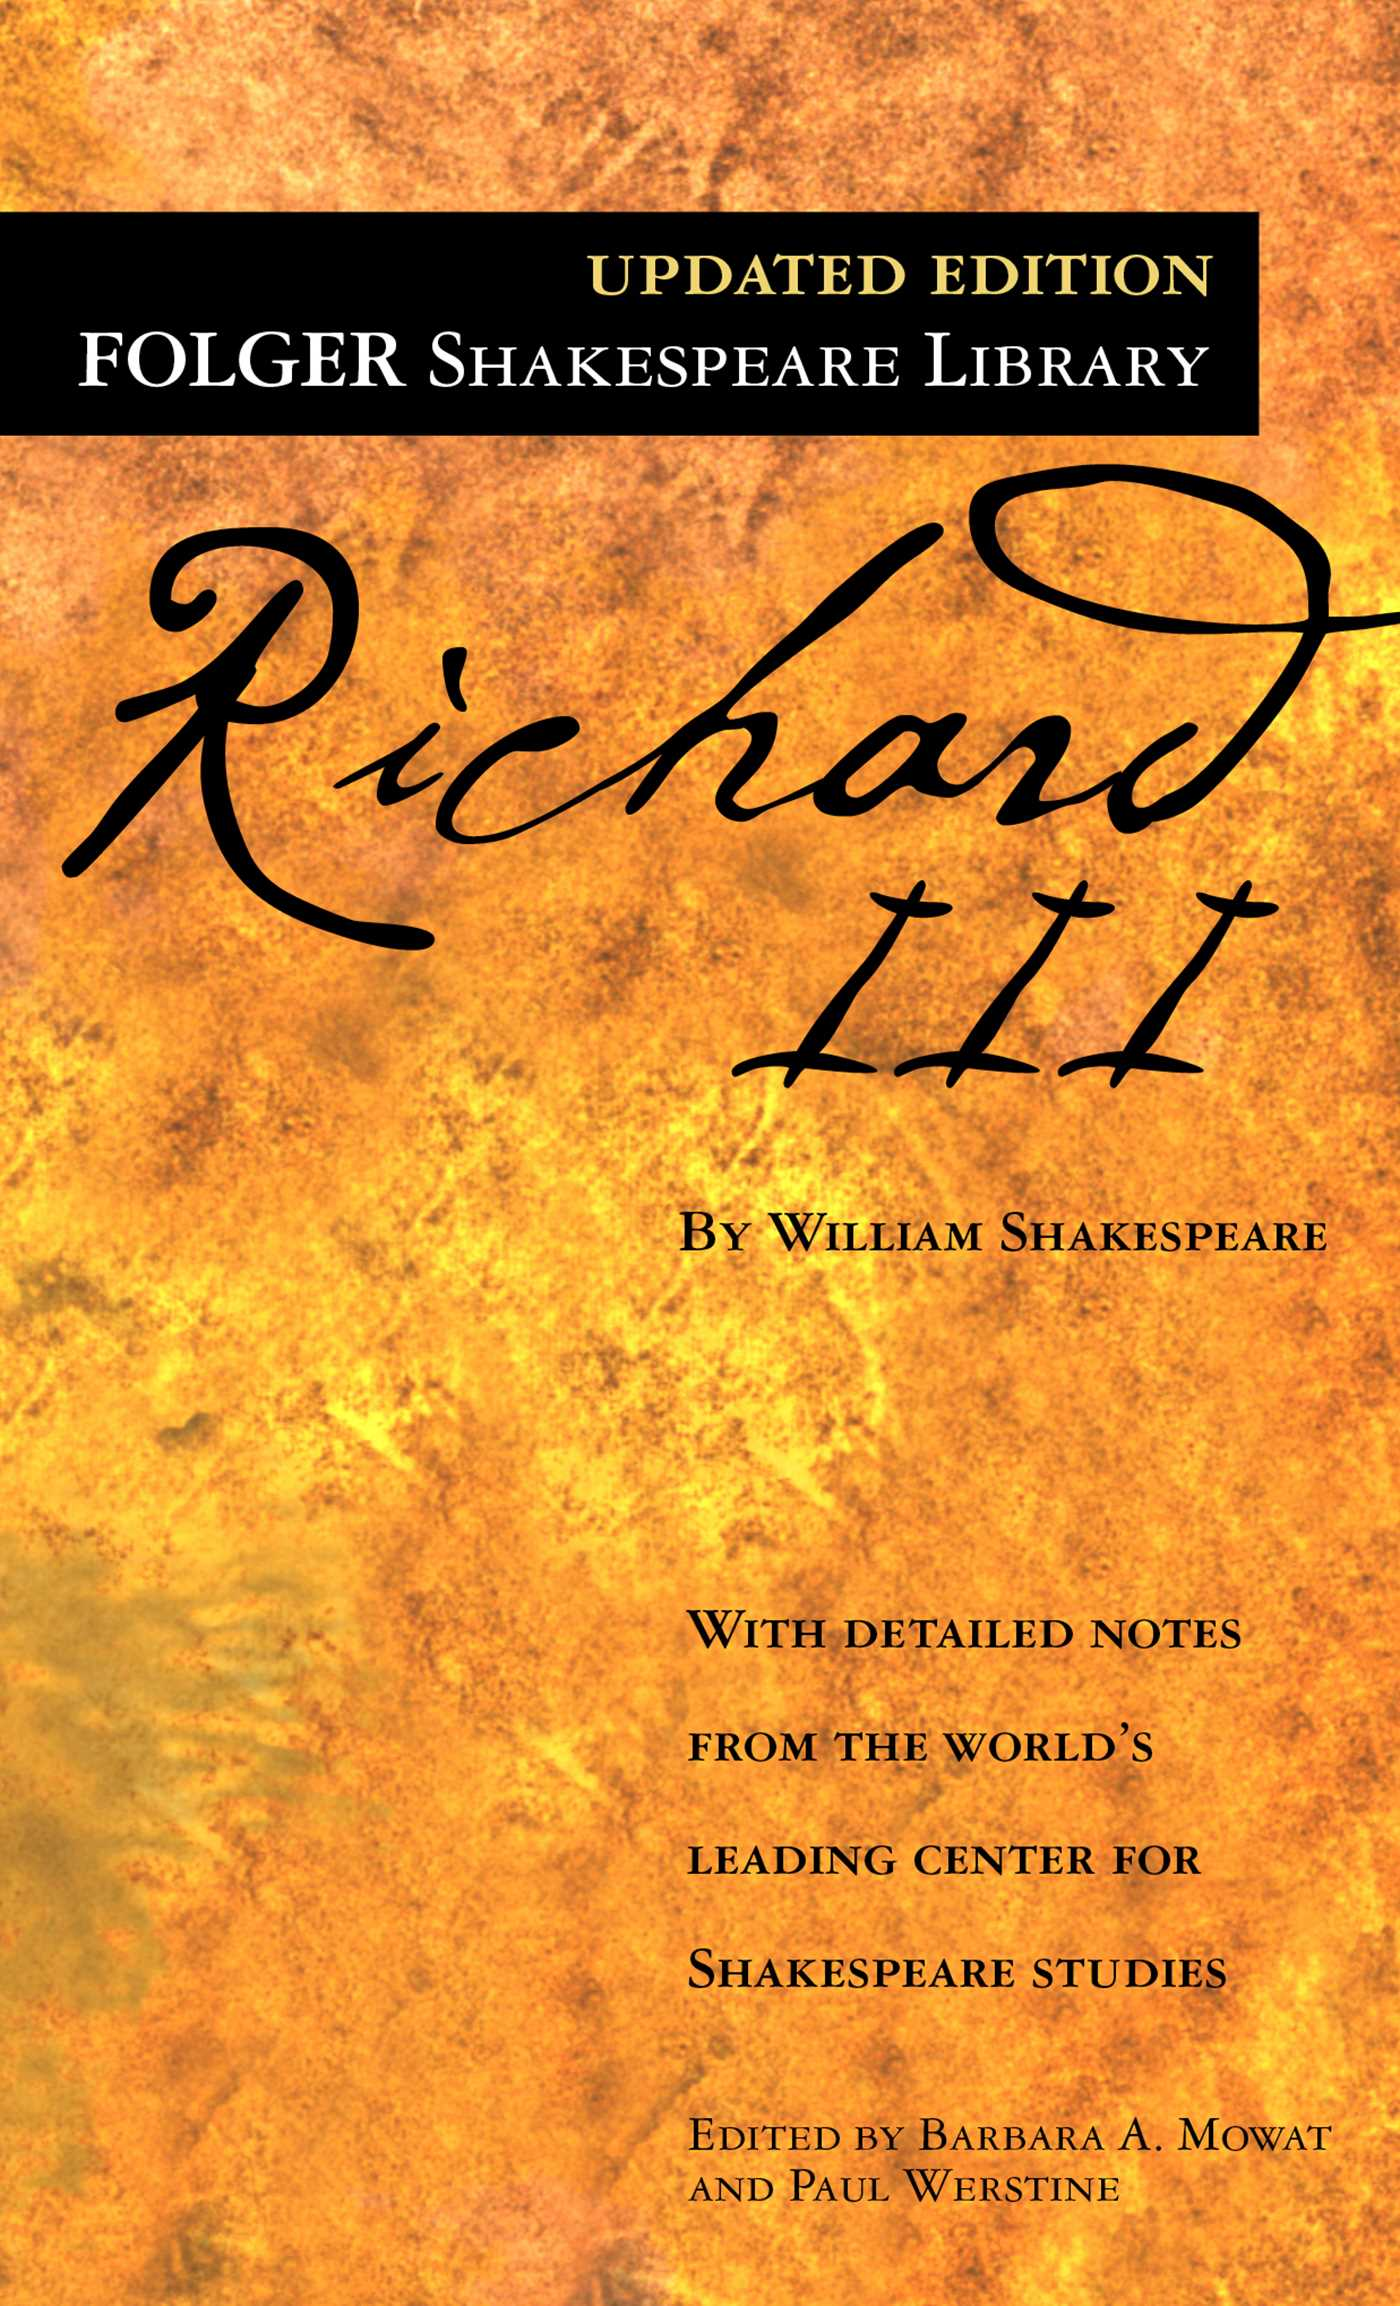 Richard-iii-9780743482844_hr